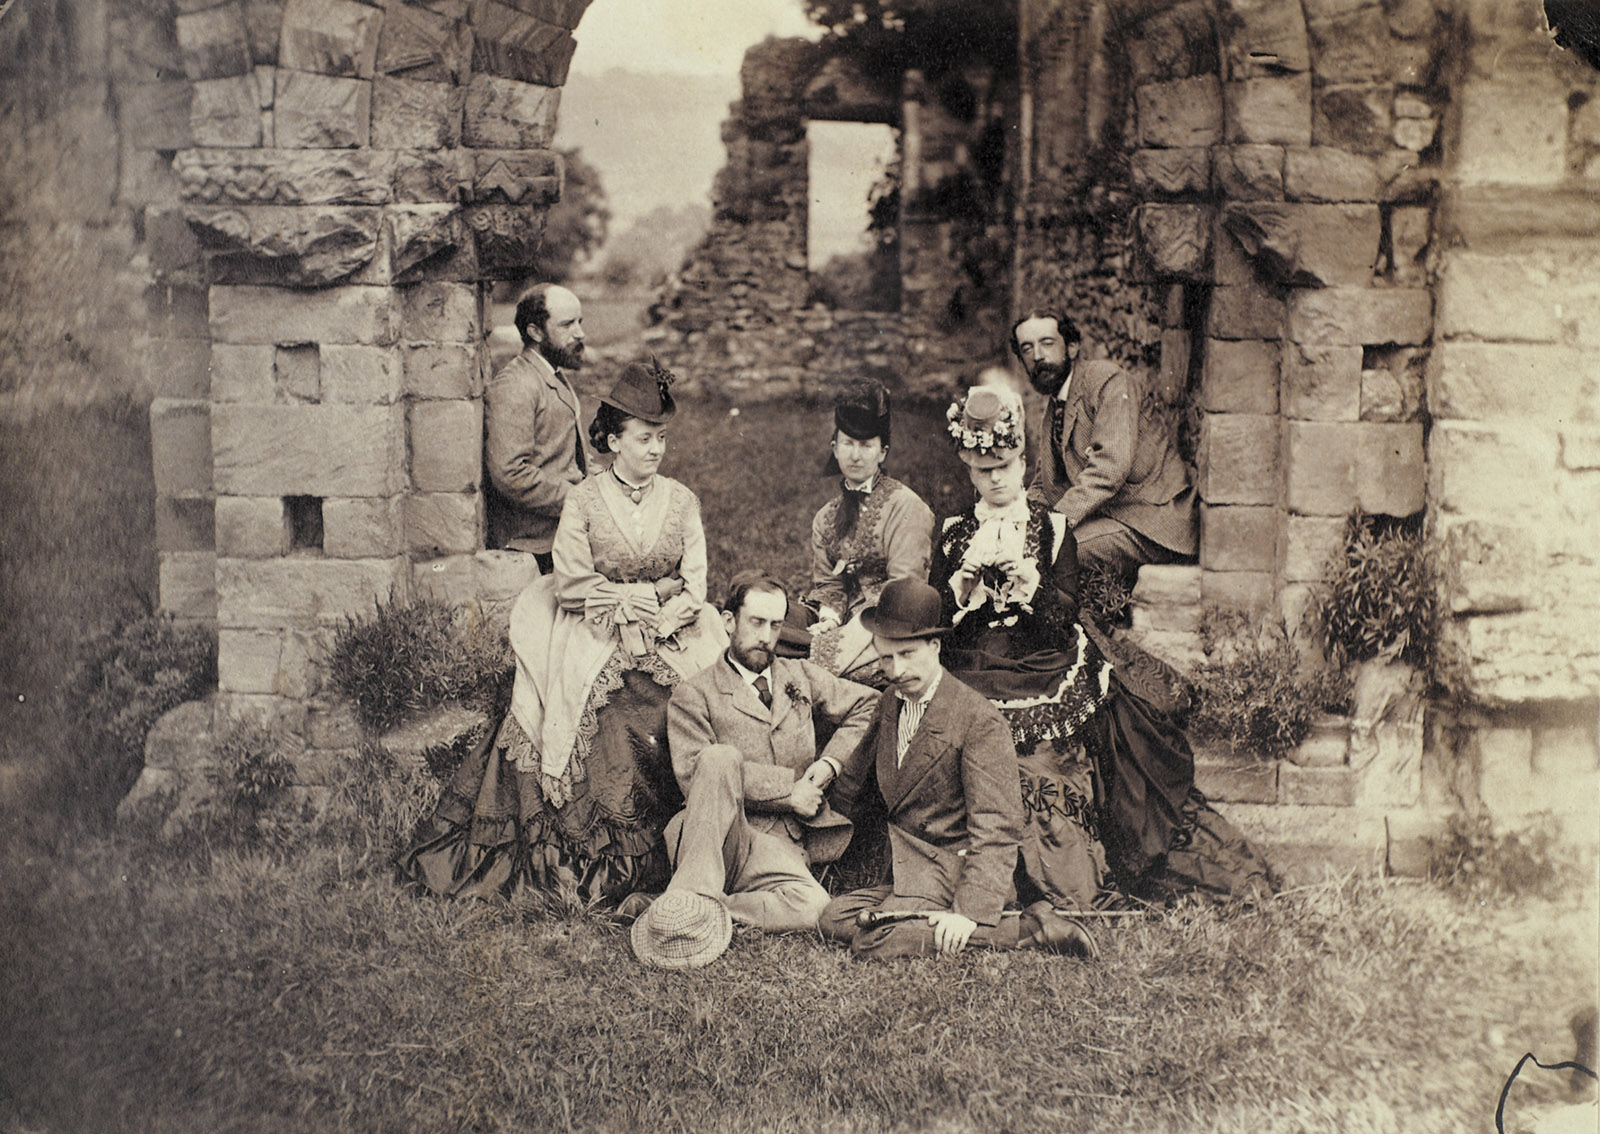 Henry Adams at Wenlock Abbey, England. The woman at the right may be his wife, Marian (Clover) Adams